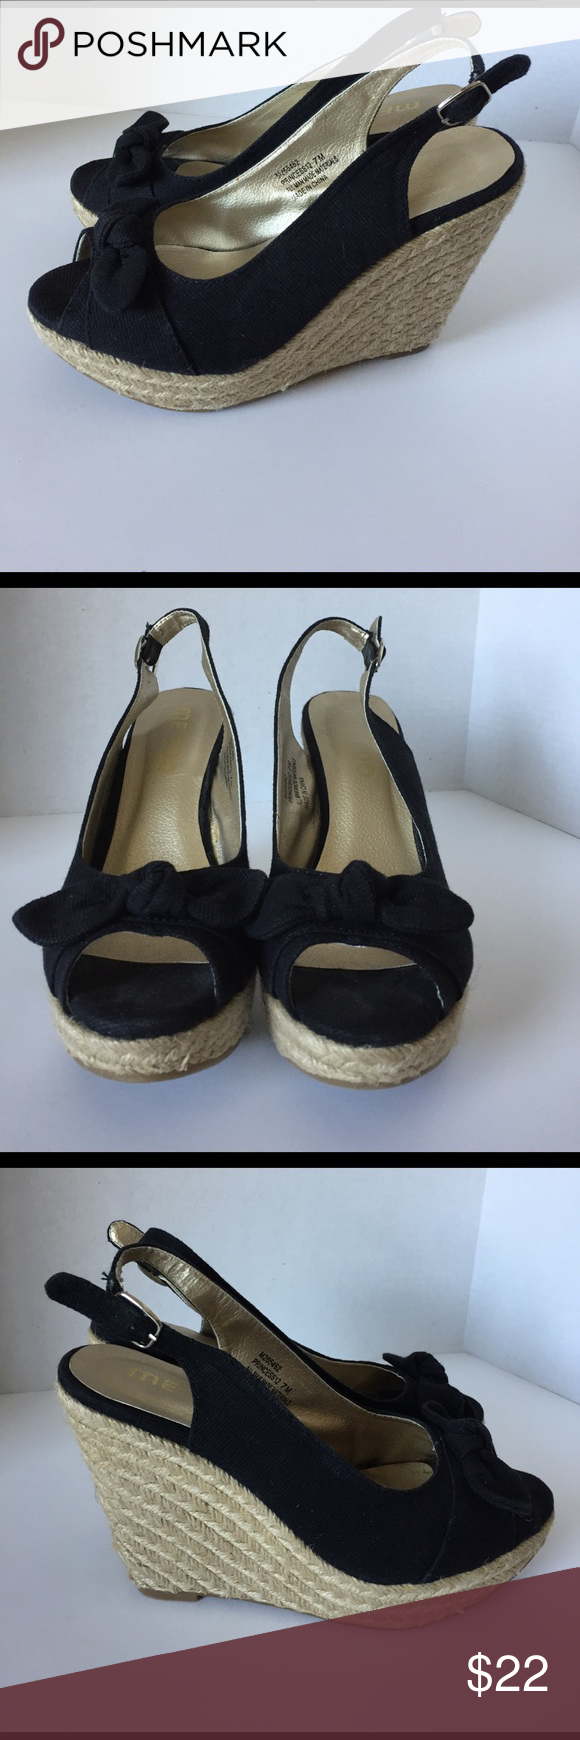 Me Too princess 12 Me Too Princess 12 burlap jule wrap wedge with buckle closure, padded inside. Black canvas peep toe with knotted bow. Heel 4' platform 1 1/4 size 7 me too Shoes Espadrilles